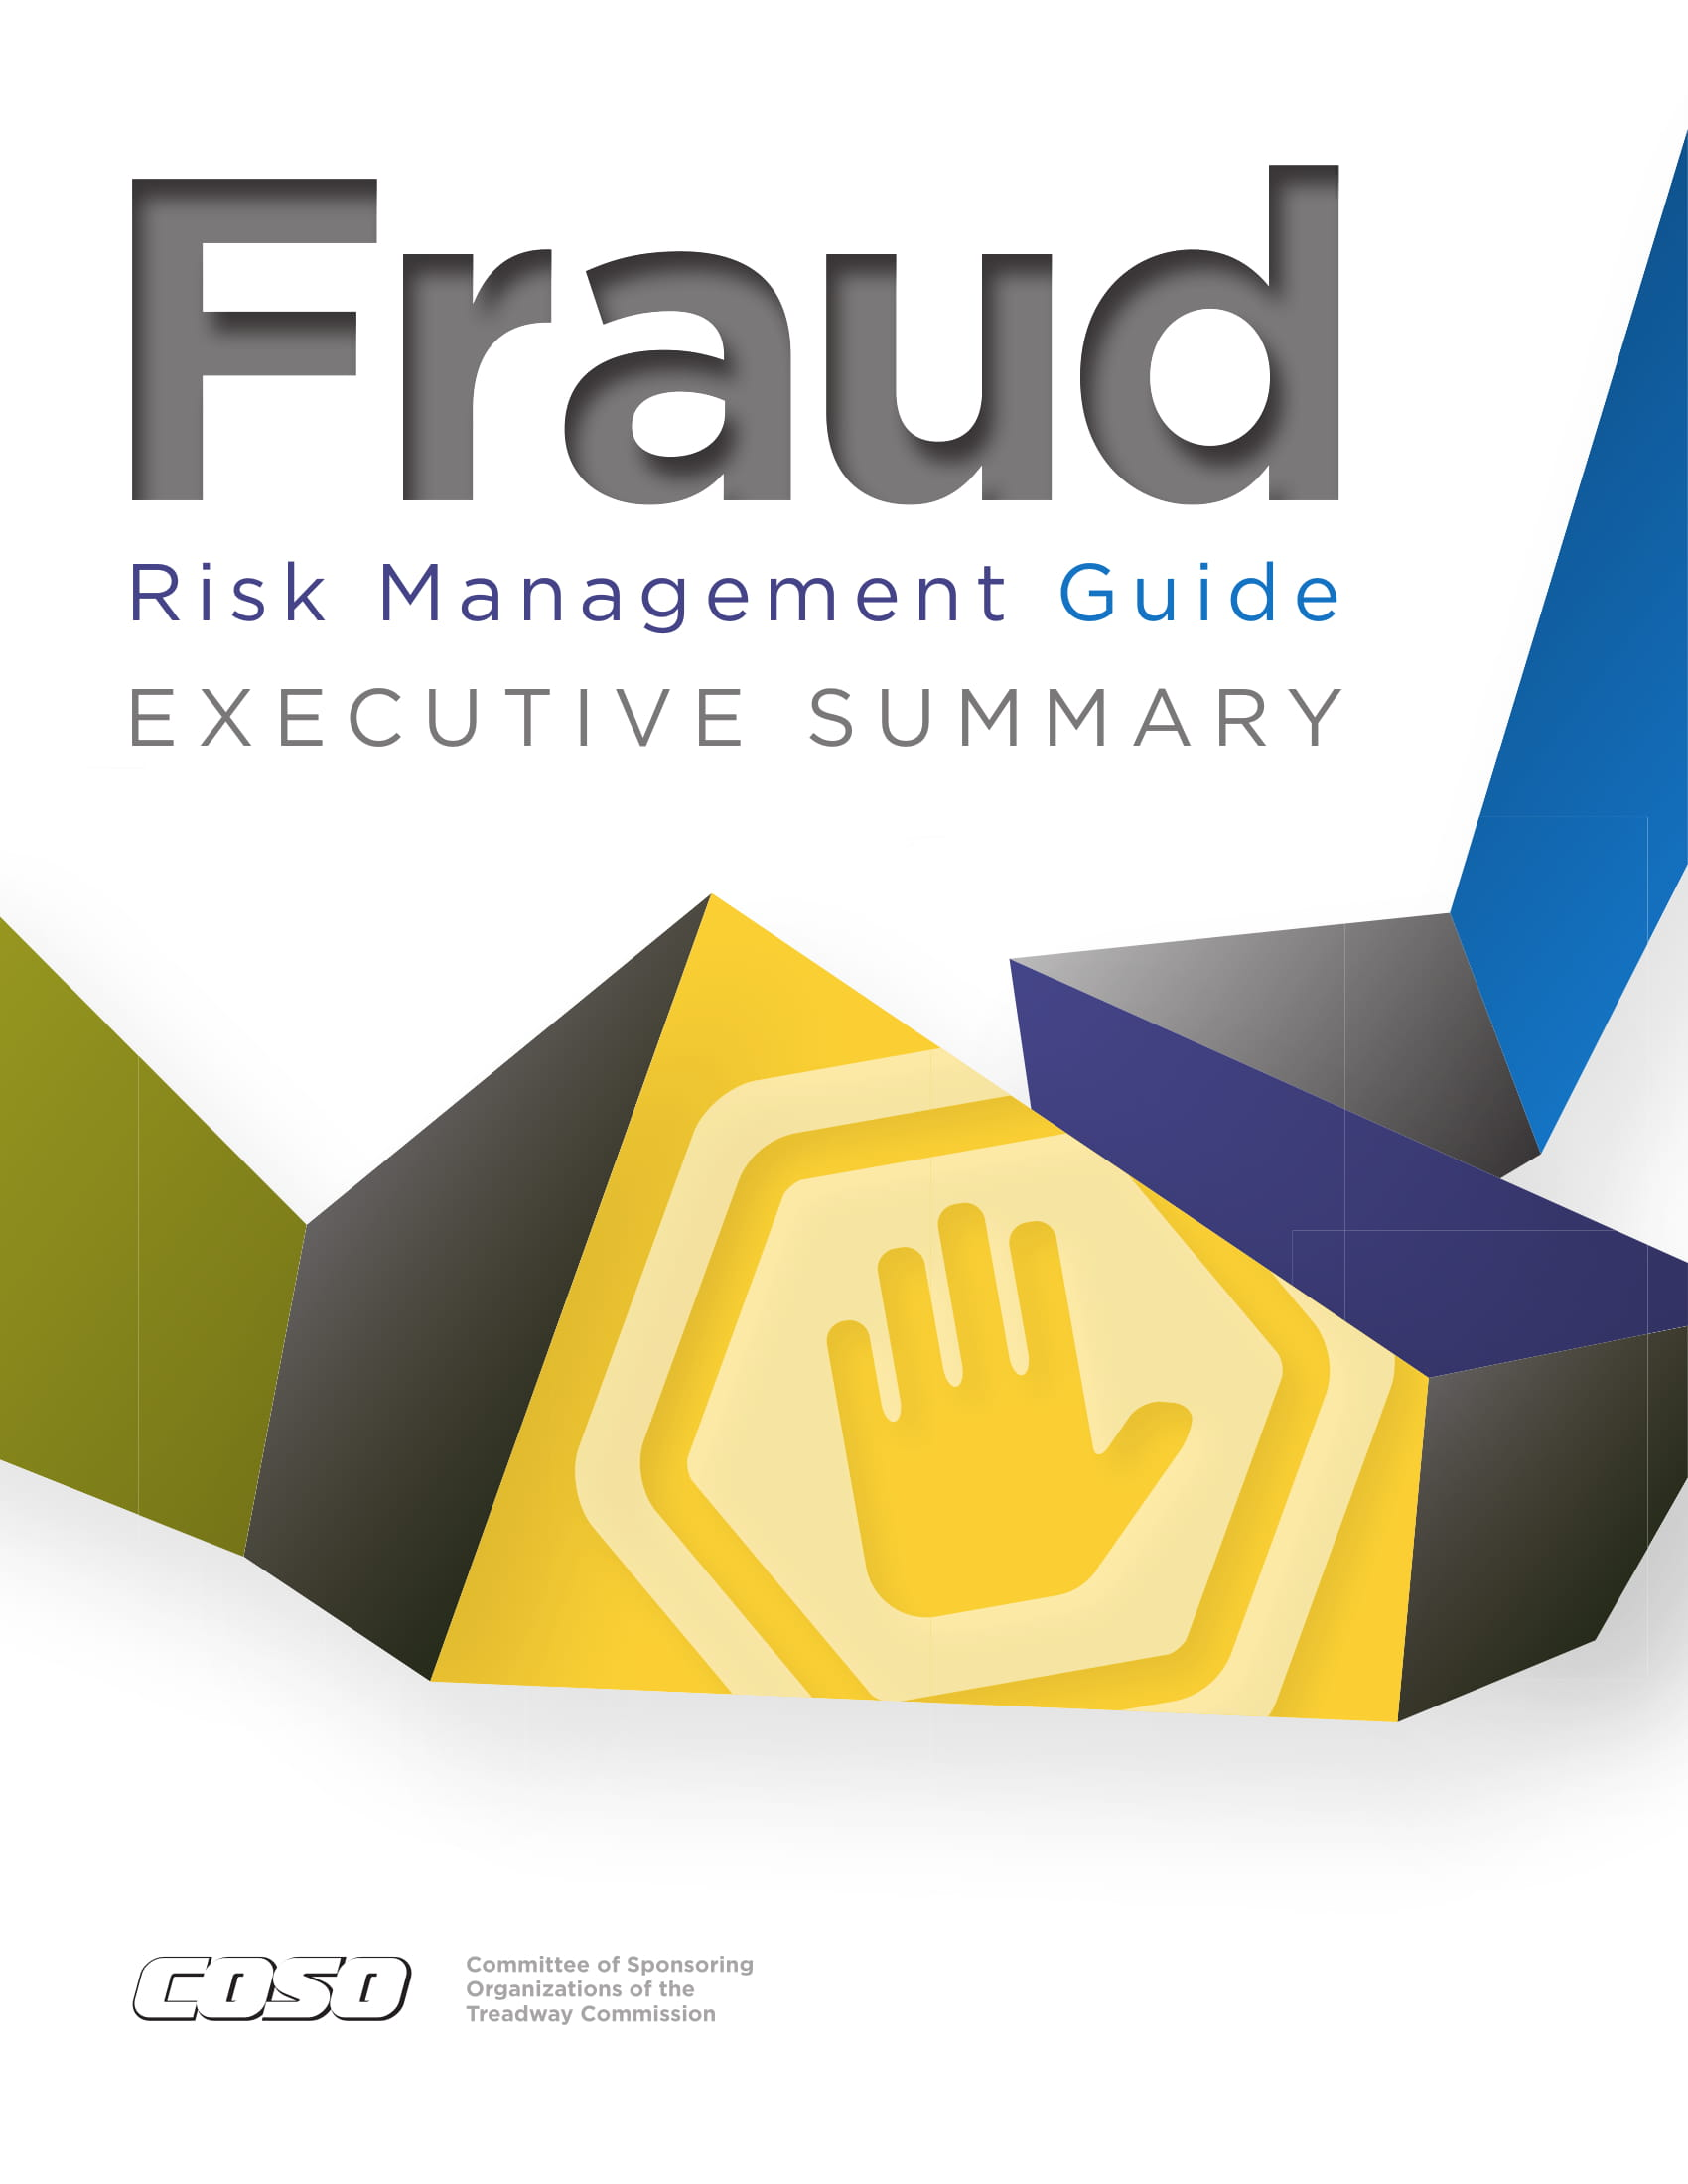 risk management guide executive summary